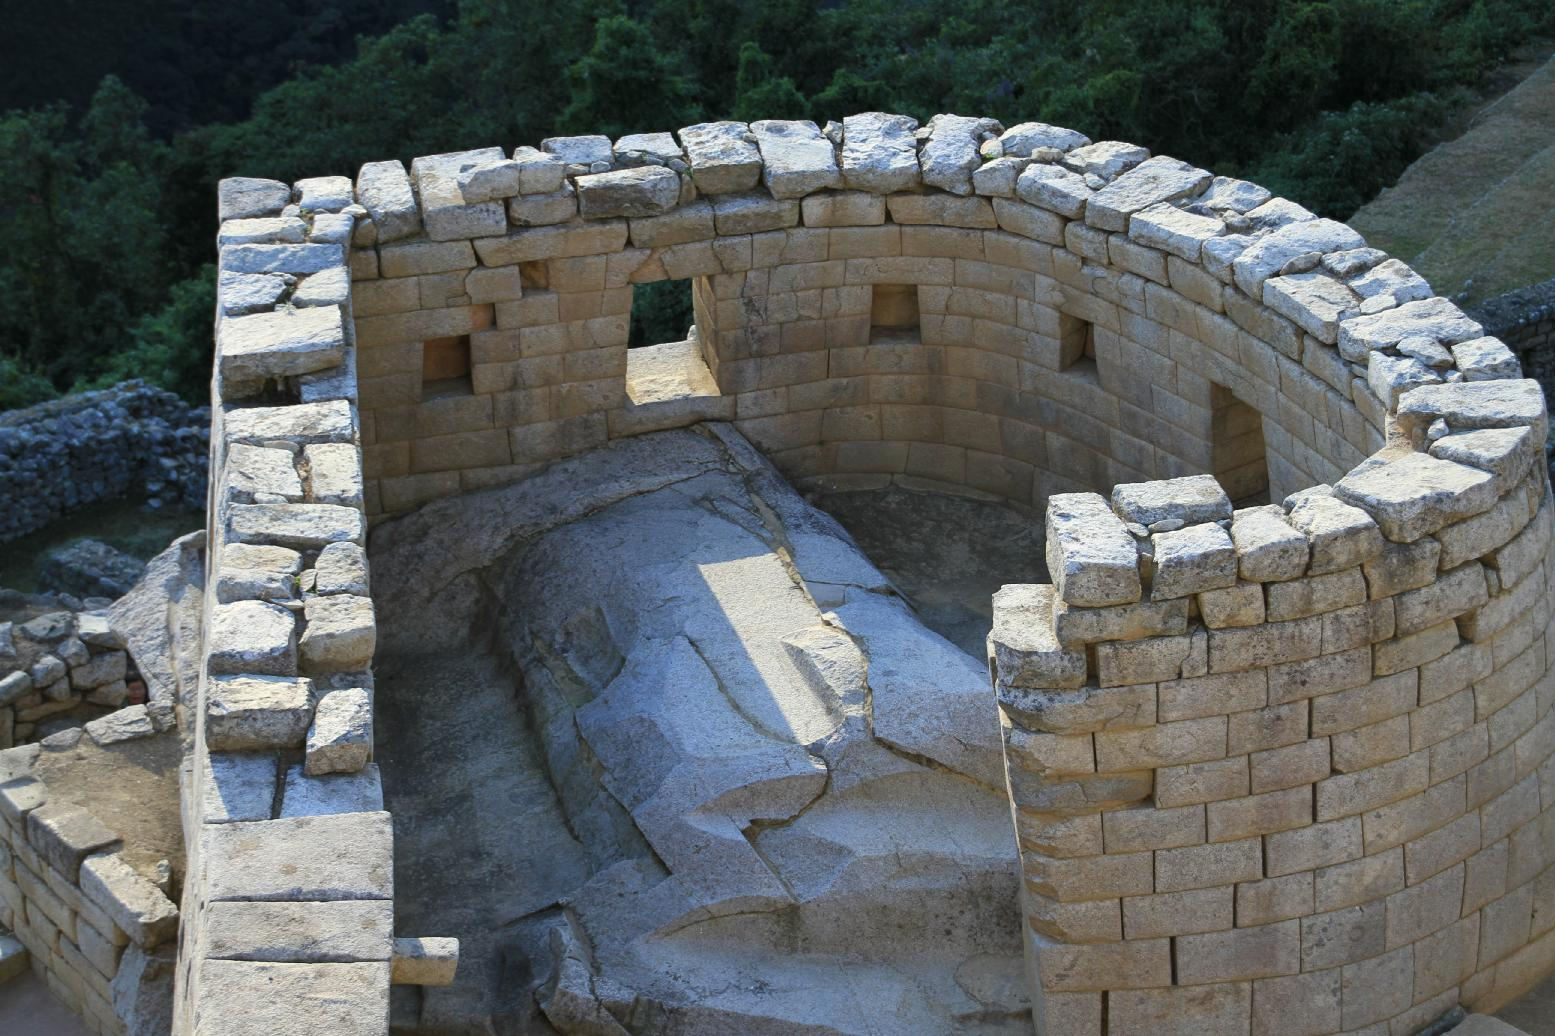 Machu Picchu has been identified as an astronomical observatory